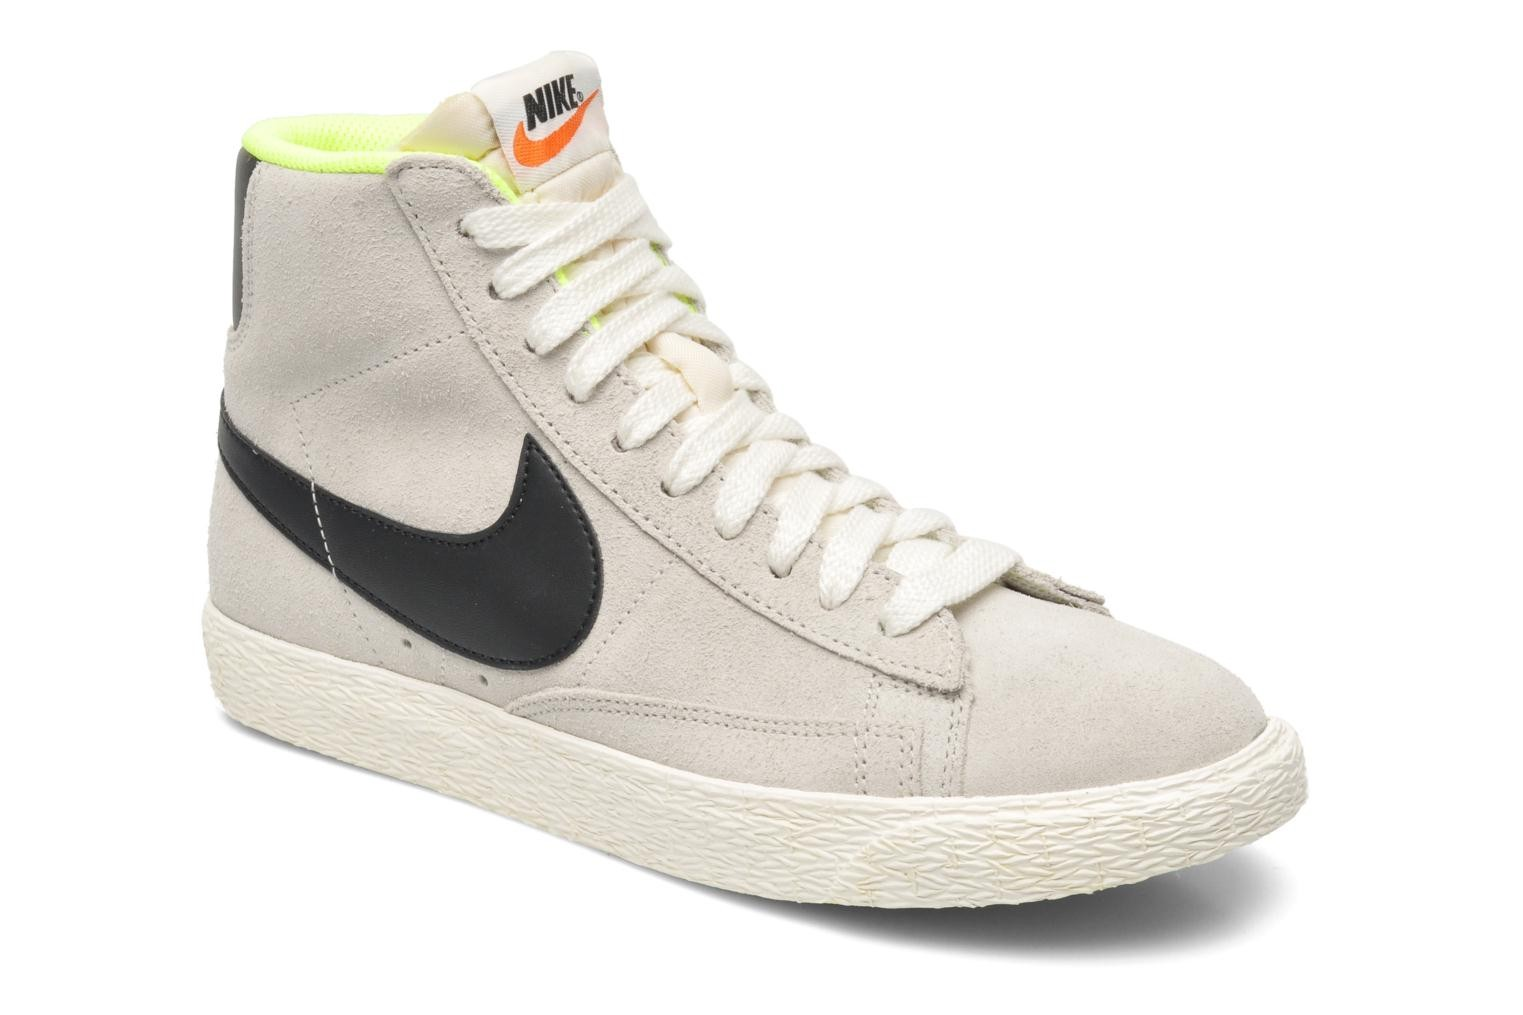 Nike WMNS Blazer Mid Suede Vintage Light Bone Black Lime Womens High Top  Sneakers